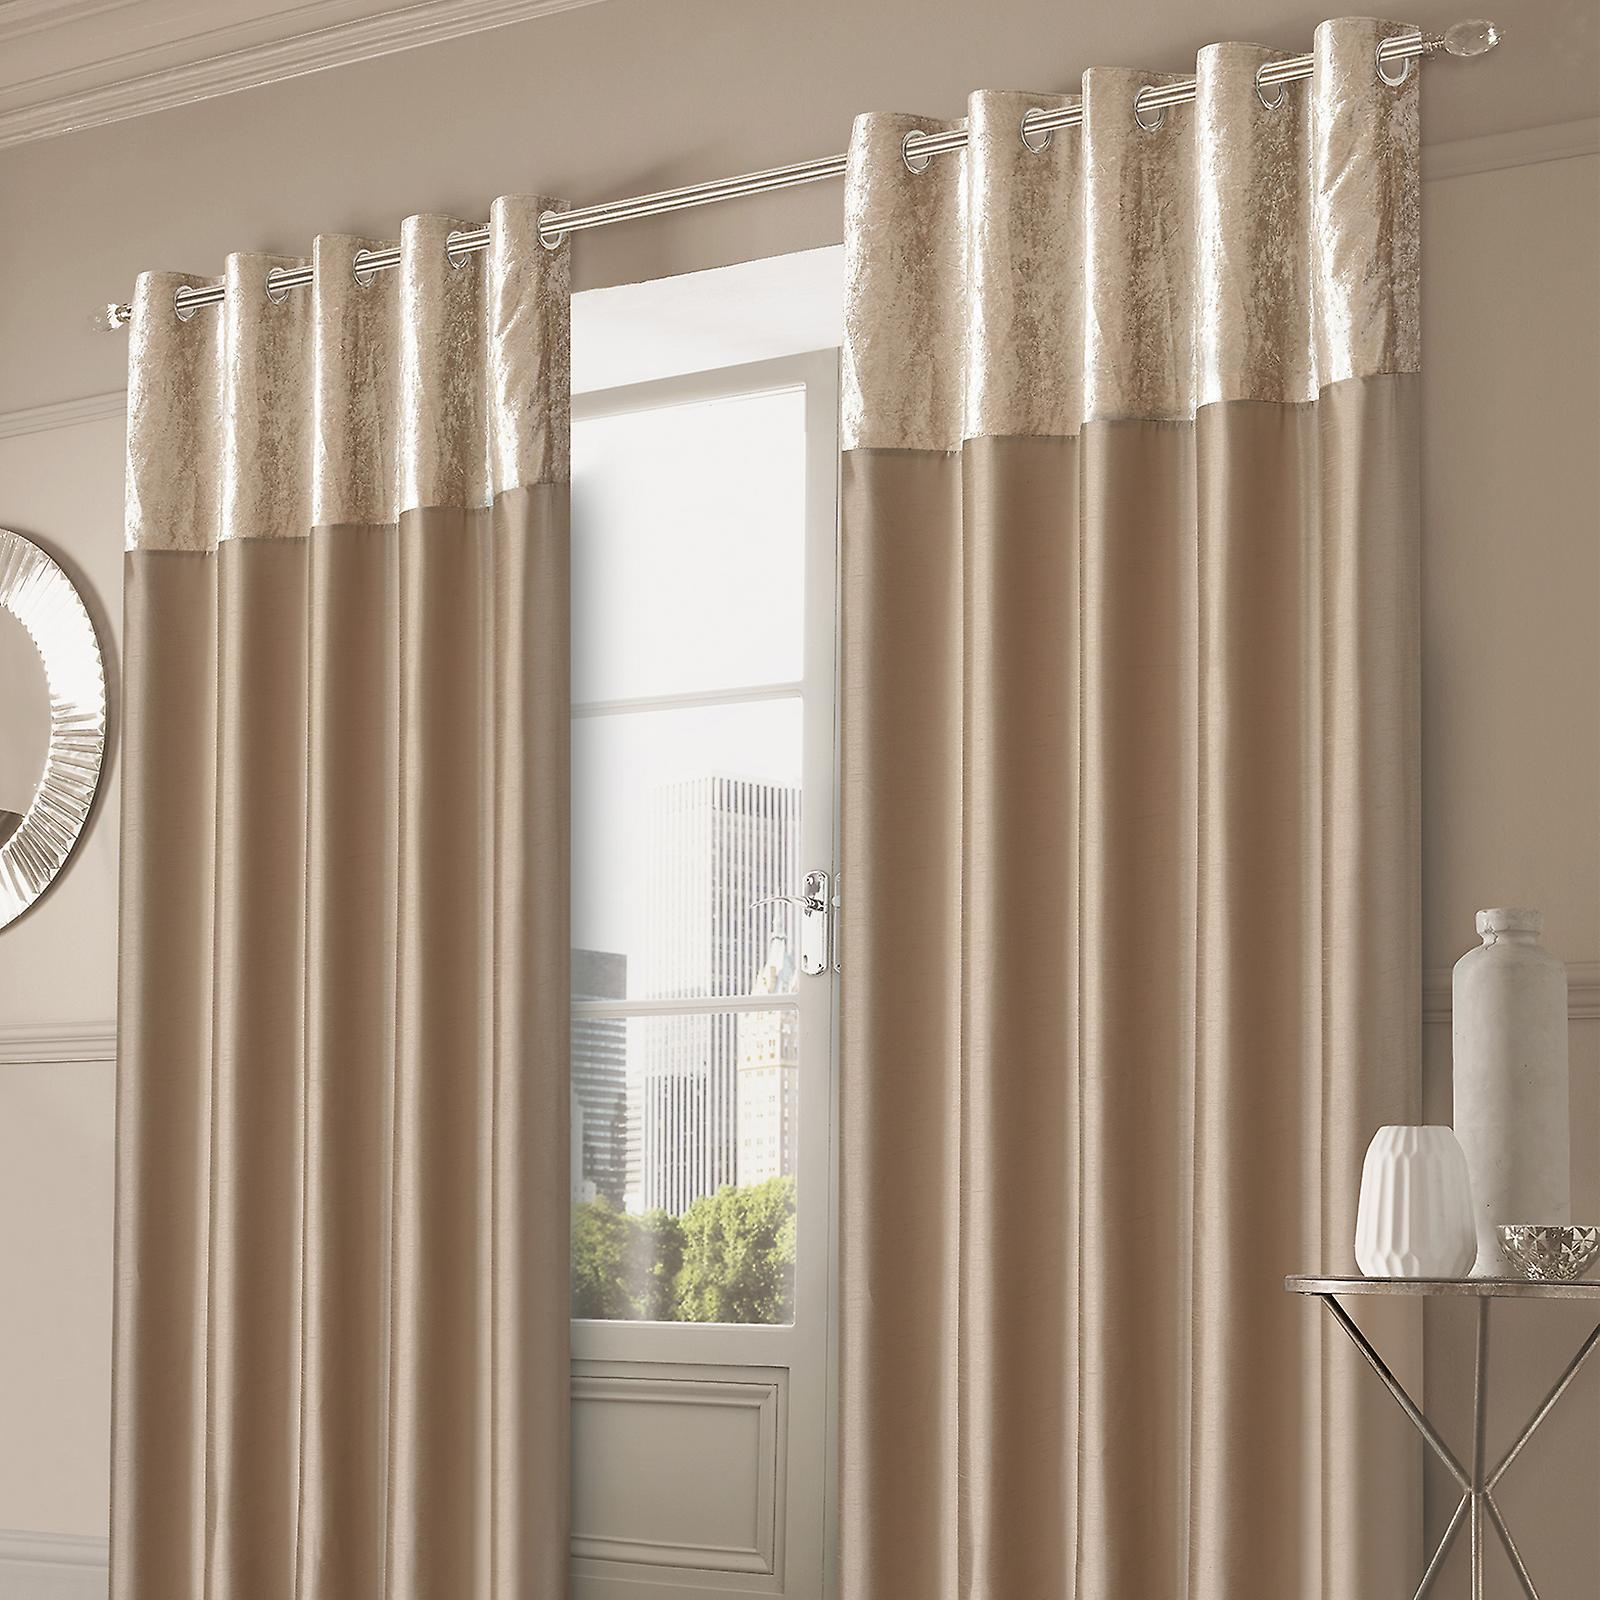 Sienna Crushed Velvet Band Curtains Pair Eyelet Faux Silk Fully Lined Ring Top With Regard To Velvet Heavyweight Grommet Top Curtain Panel Pairs (View 24 of 30)